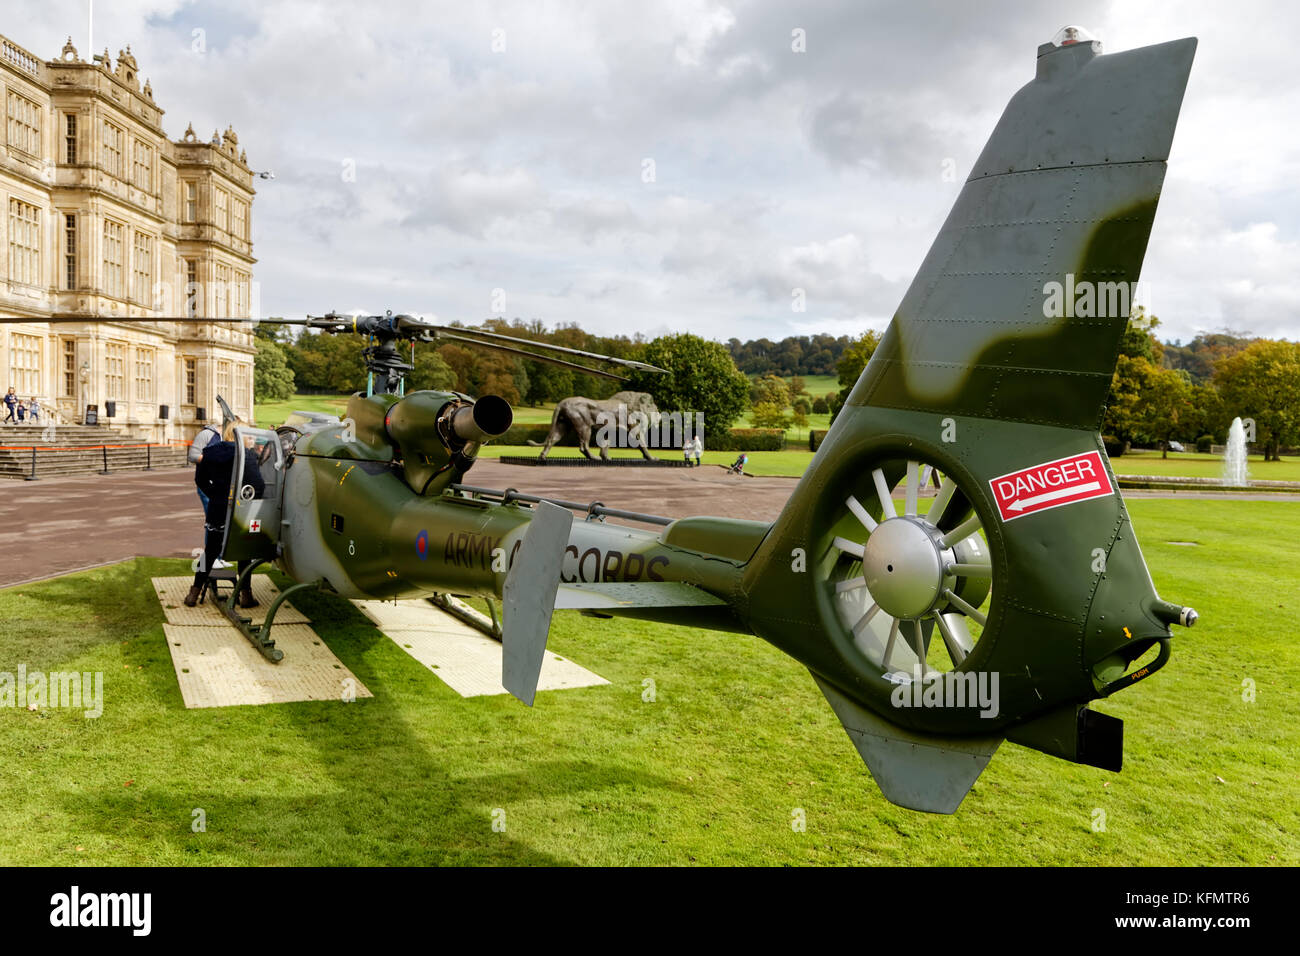 A British Army Air Corps Westland Gazelle AH.1 Helicopter on display at the Longleat Military Spectacular 2017 - Stock Image